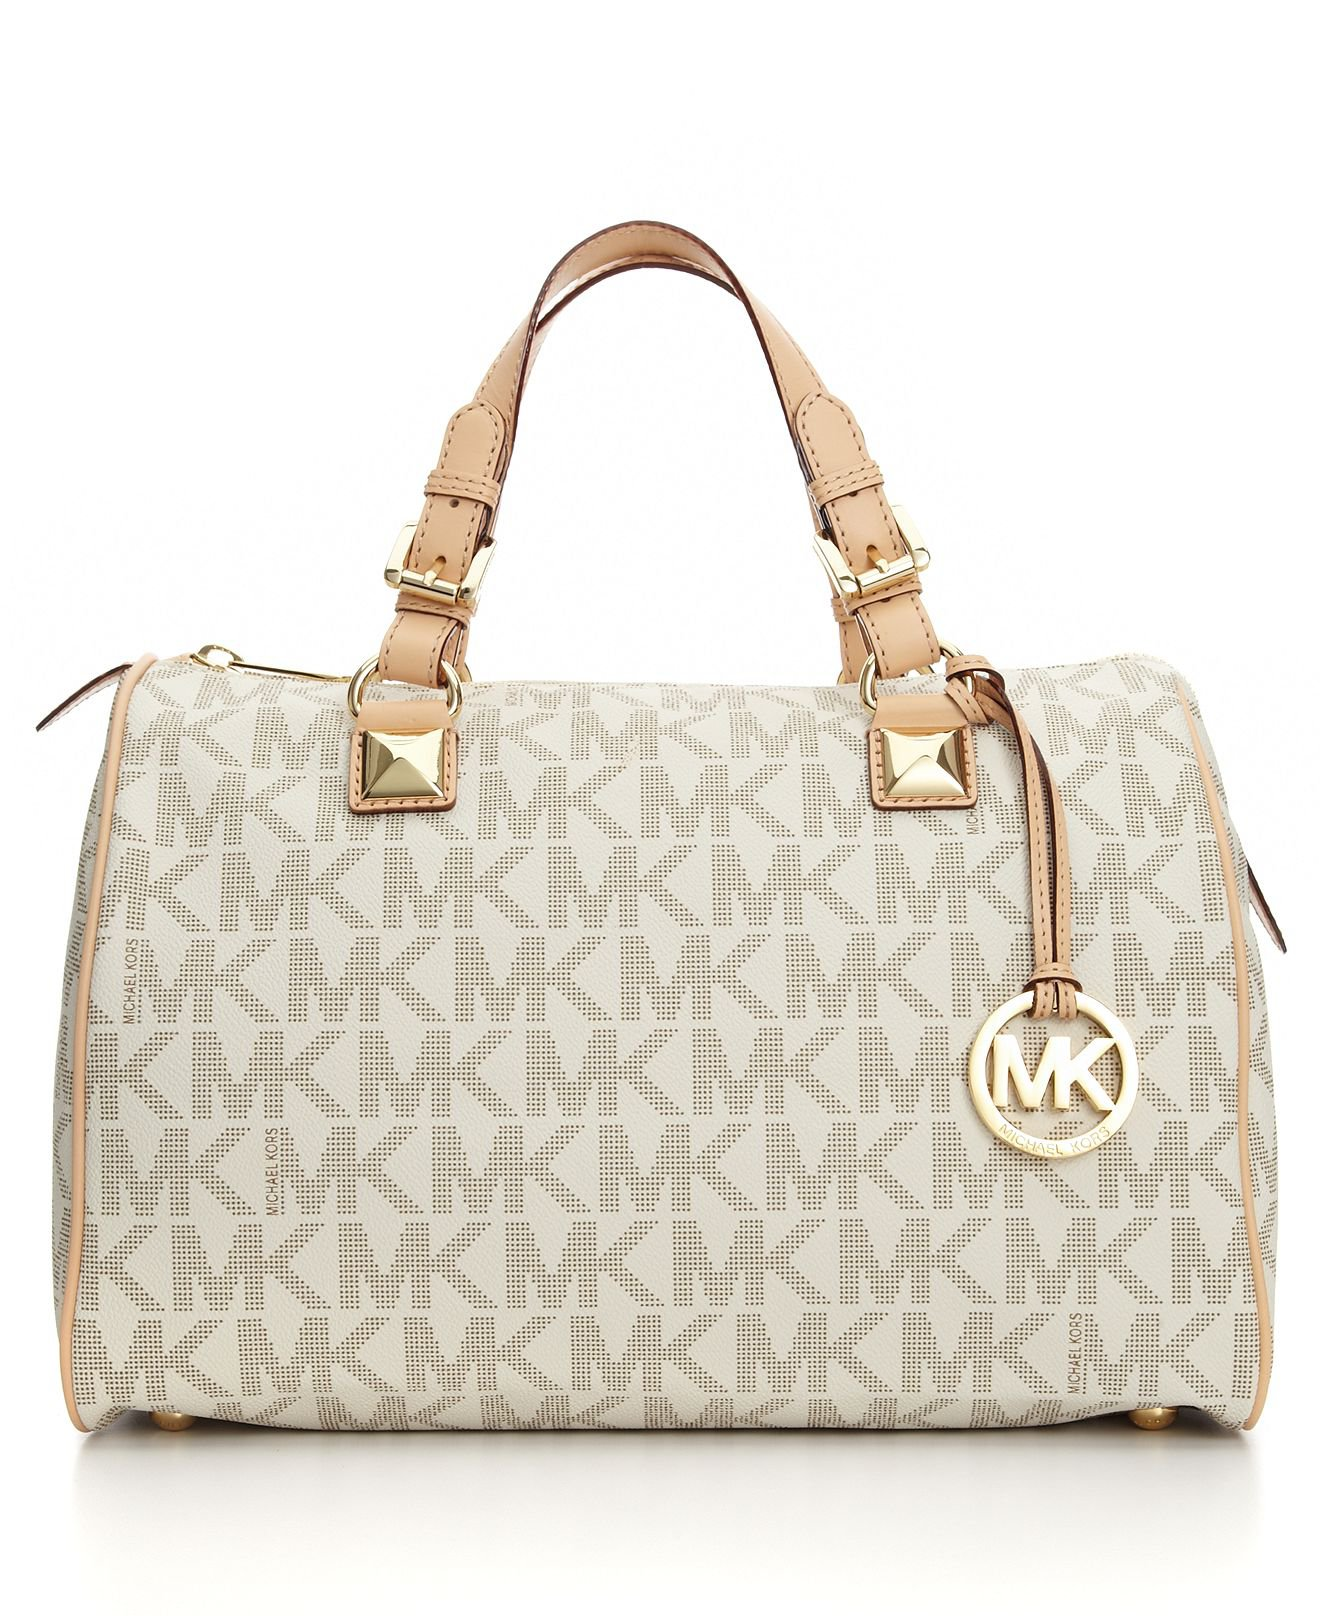 Michael kors bags with studs